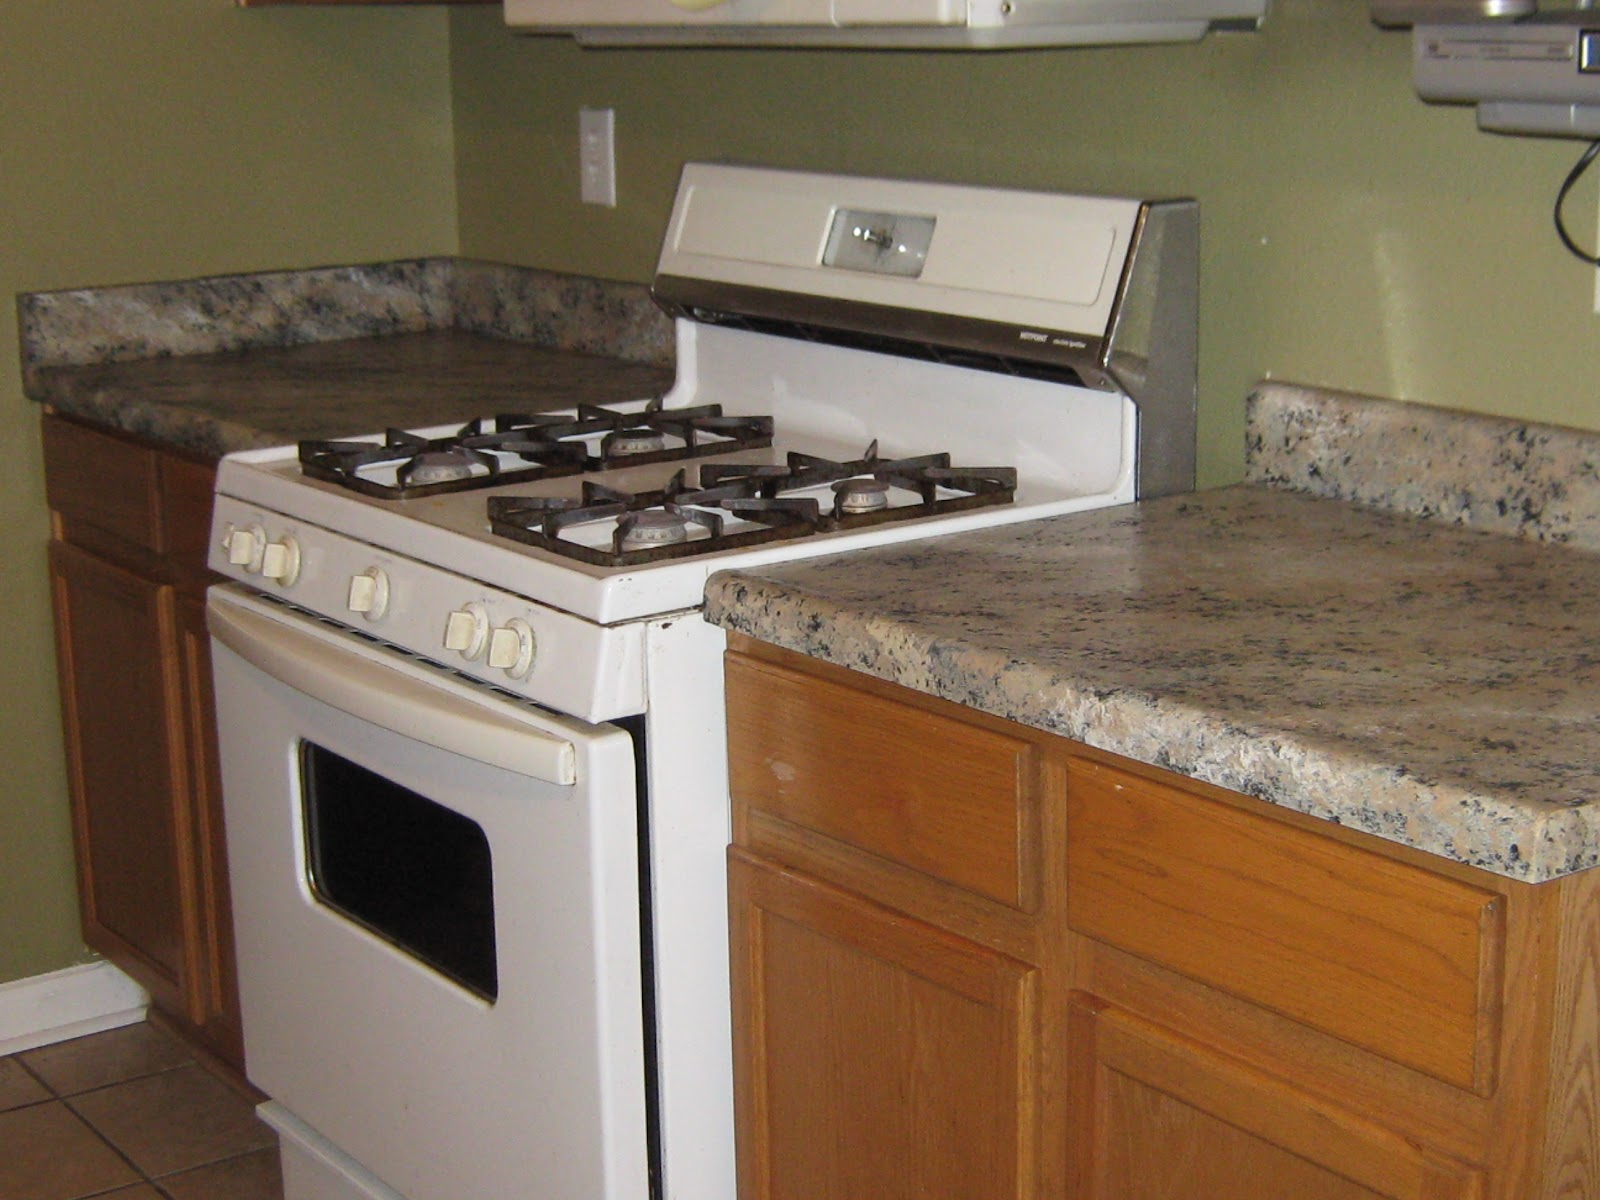 Painted countertops to look like granite - Interesting Lynda Bergman Decorative Artisan Painting Formica To Look Like With Paint Countertops To Look Like Granite